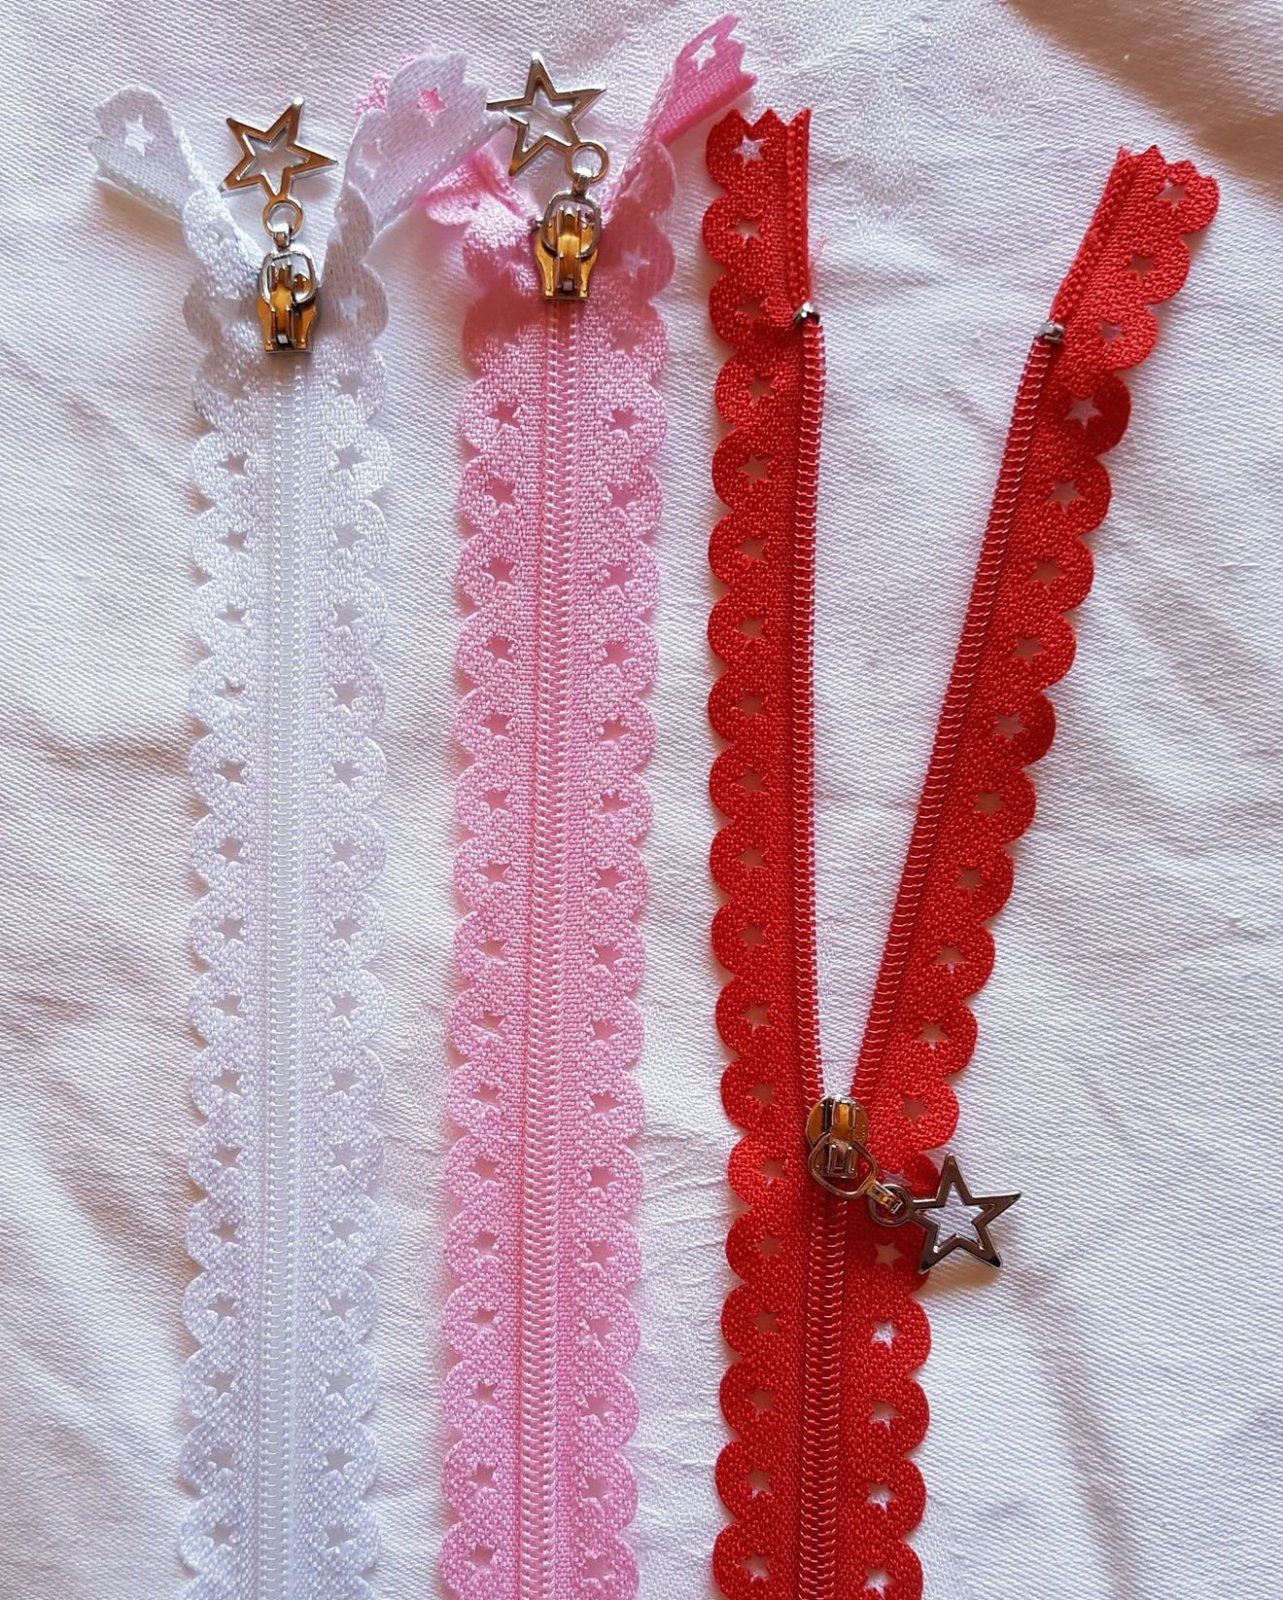 Lace Star Zippers